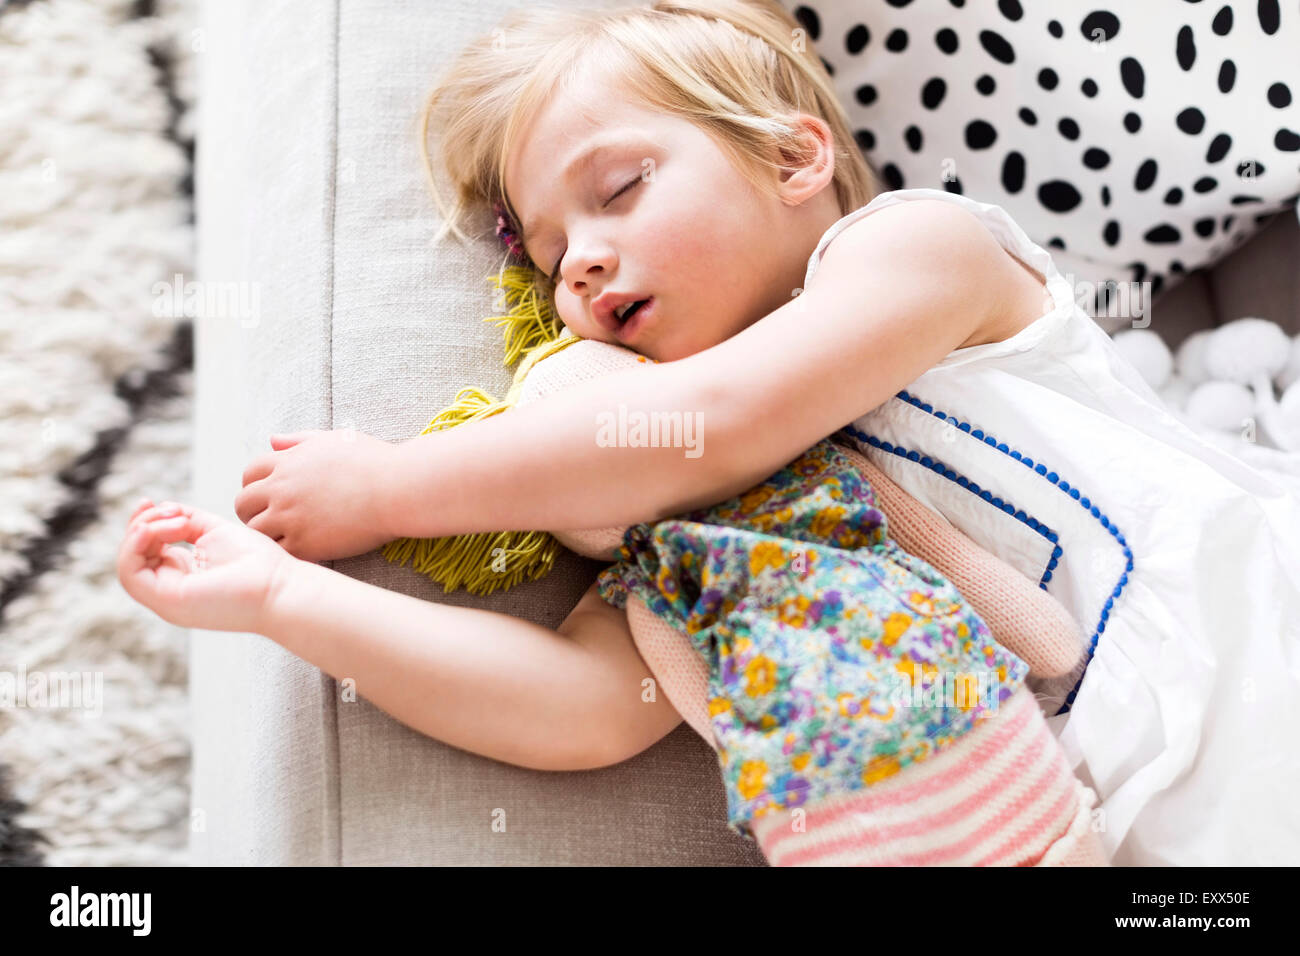 Girl (2-3) napping on sofa - Stock Image